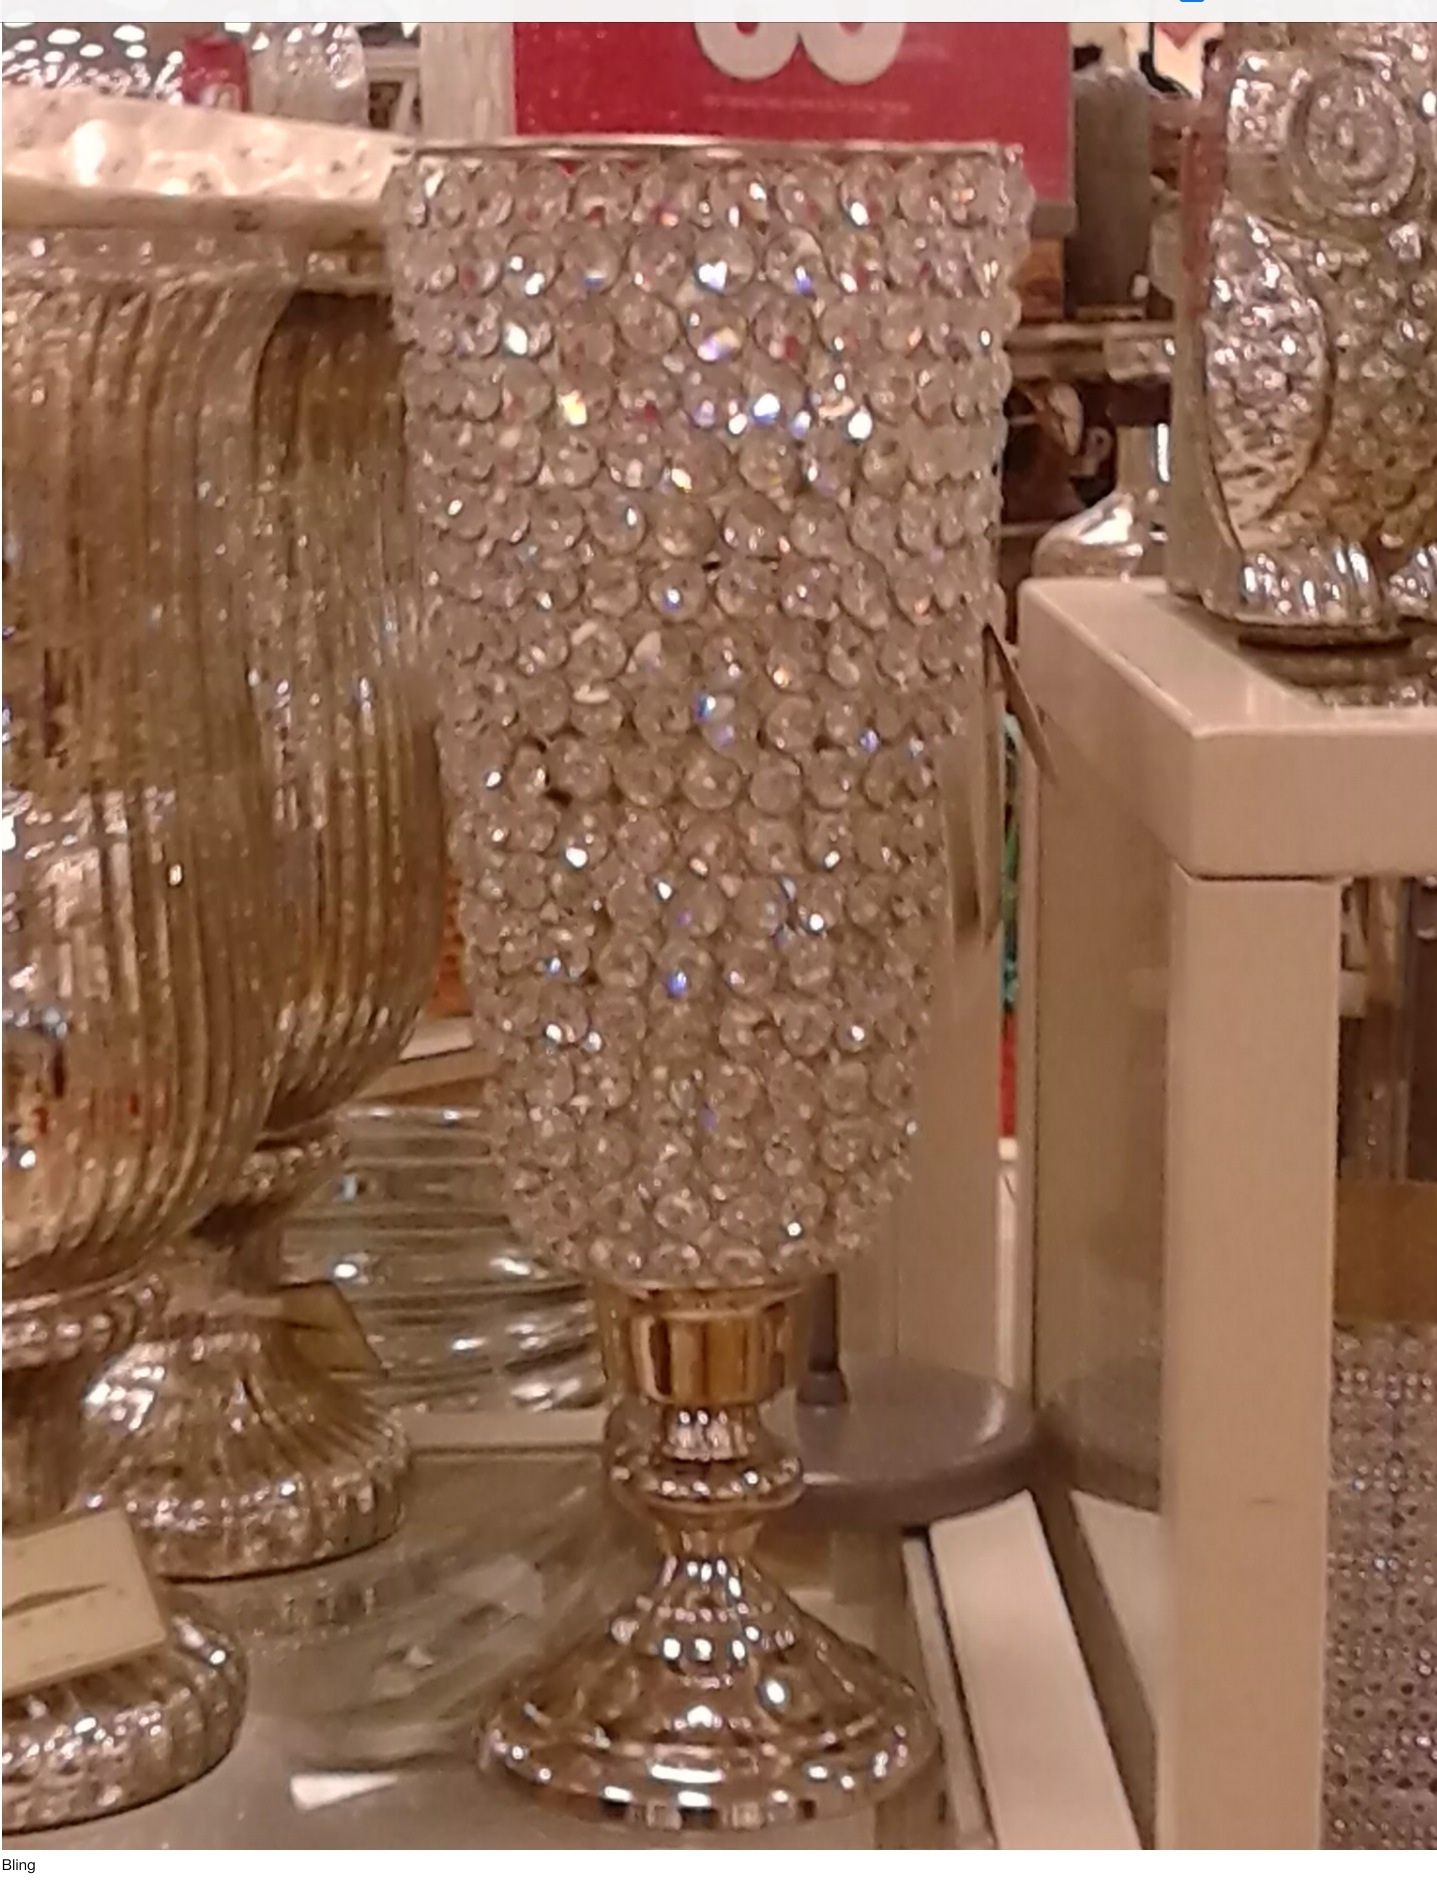 Mfg Is Hometrendz Out Of Georgia Found This At HomesGood Perfect For A Bling Wedding Could Add Vase In Center